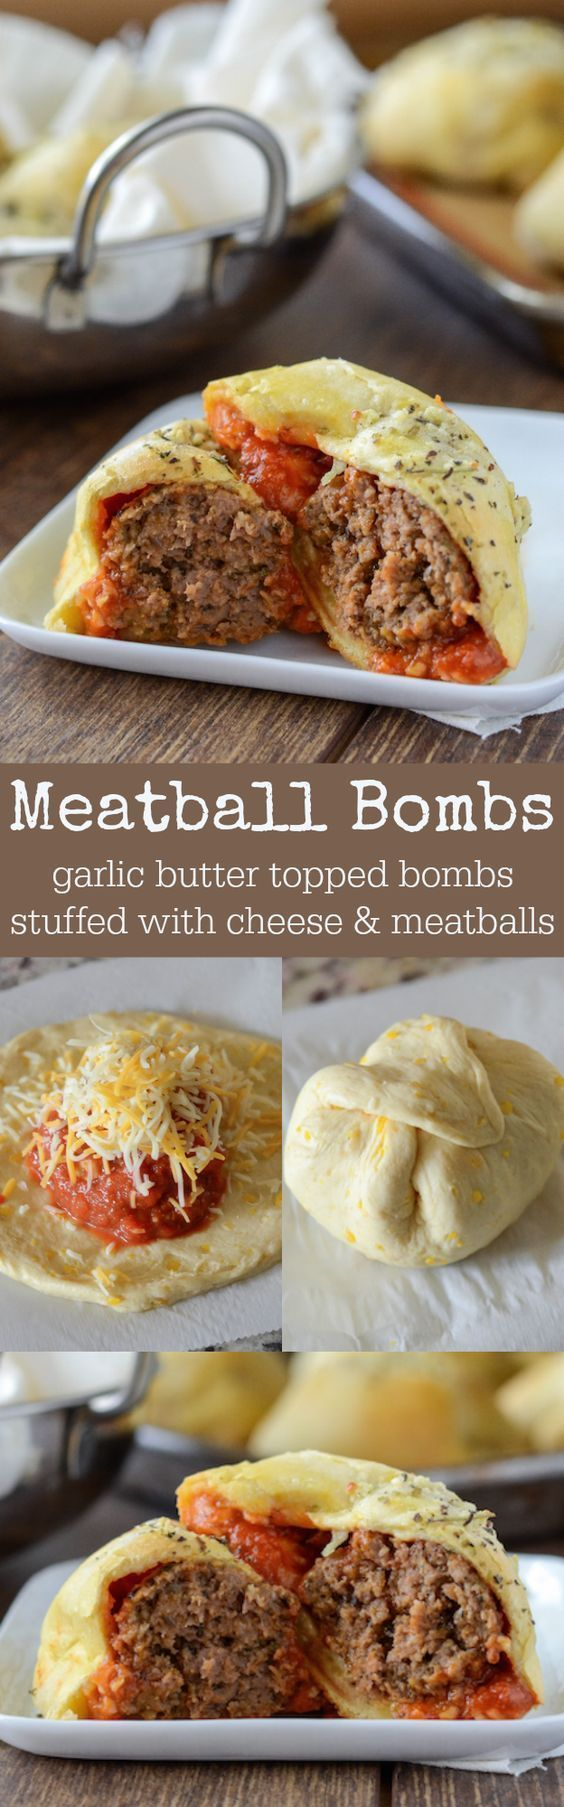 The BEST 30 Minute Meals Recipes – Easy, Quick and Delicious Family Friendly Lunch and Dinner Ideas – Page 2 – Dreaming in DIY